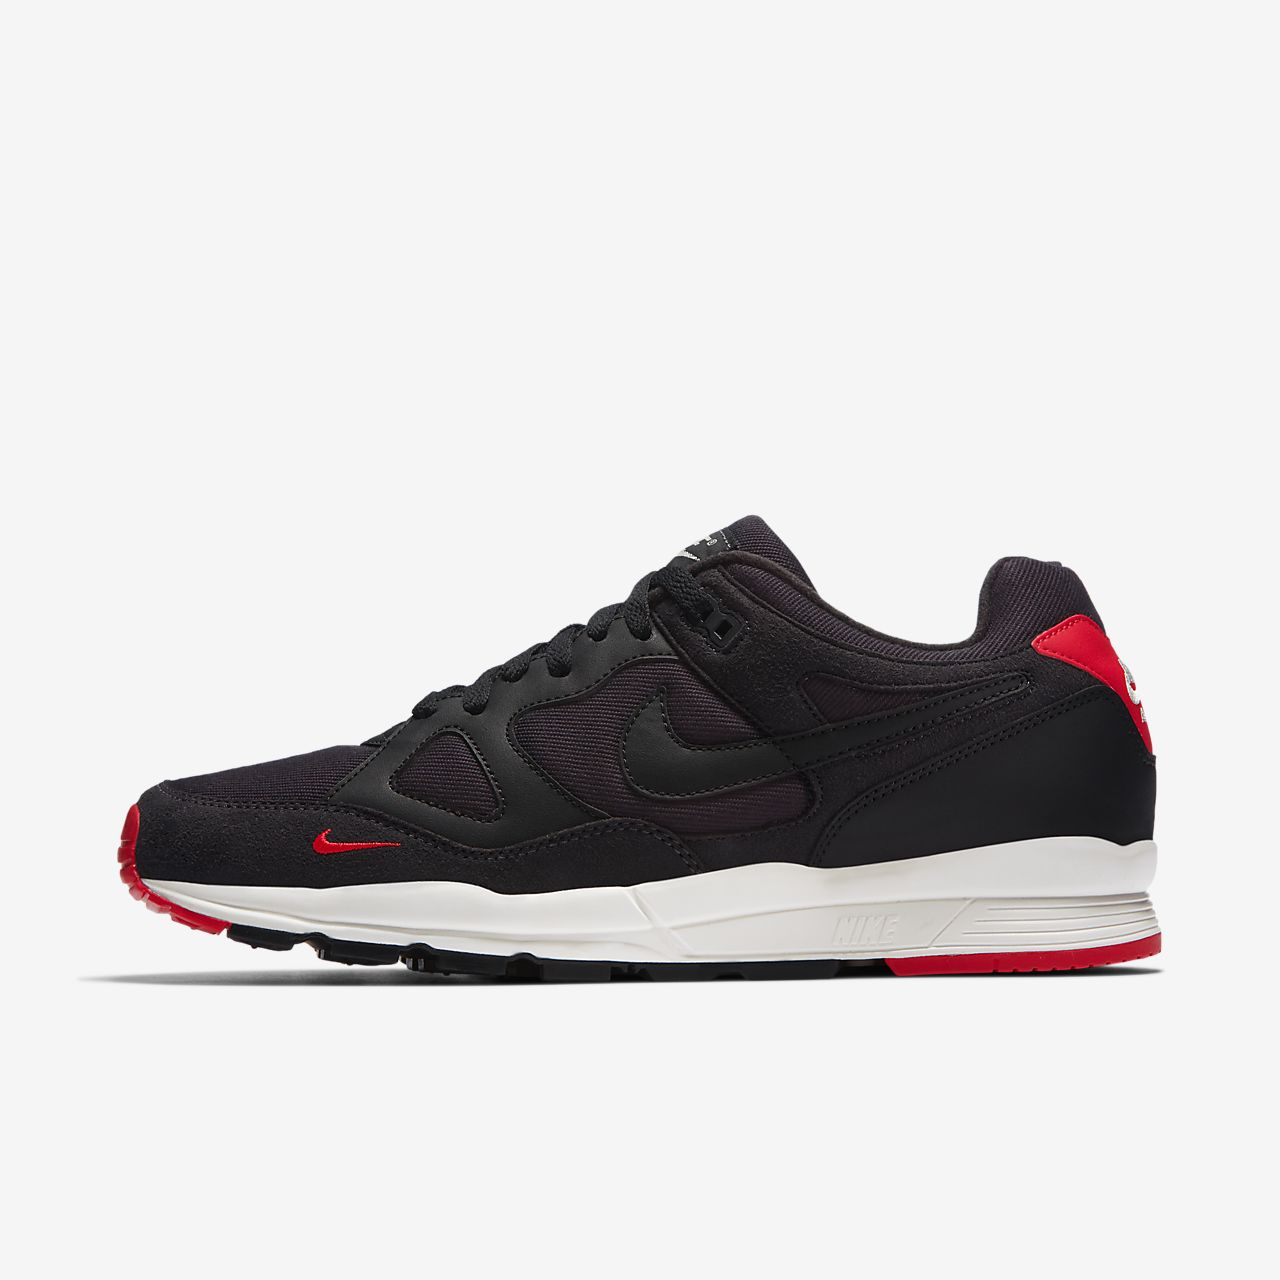 Nike Air Span II SE Mens Shoe